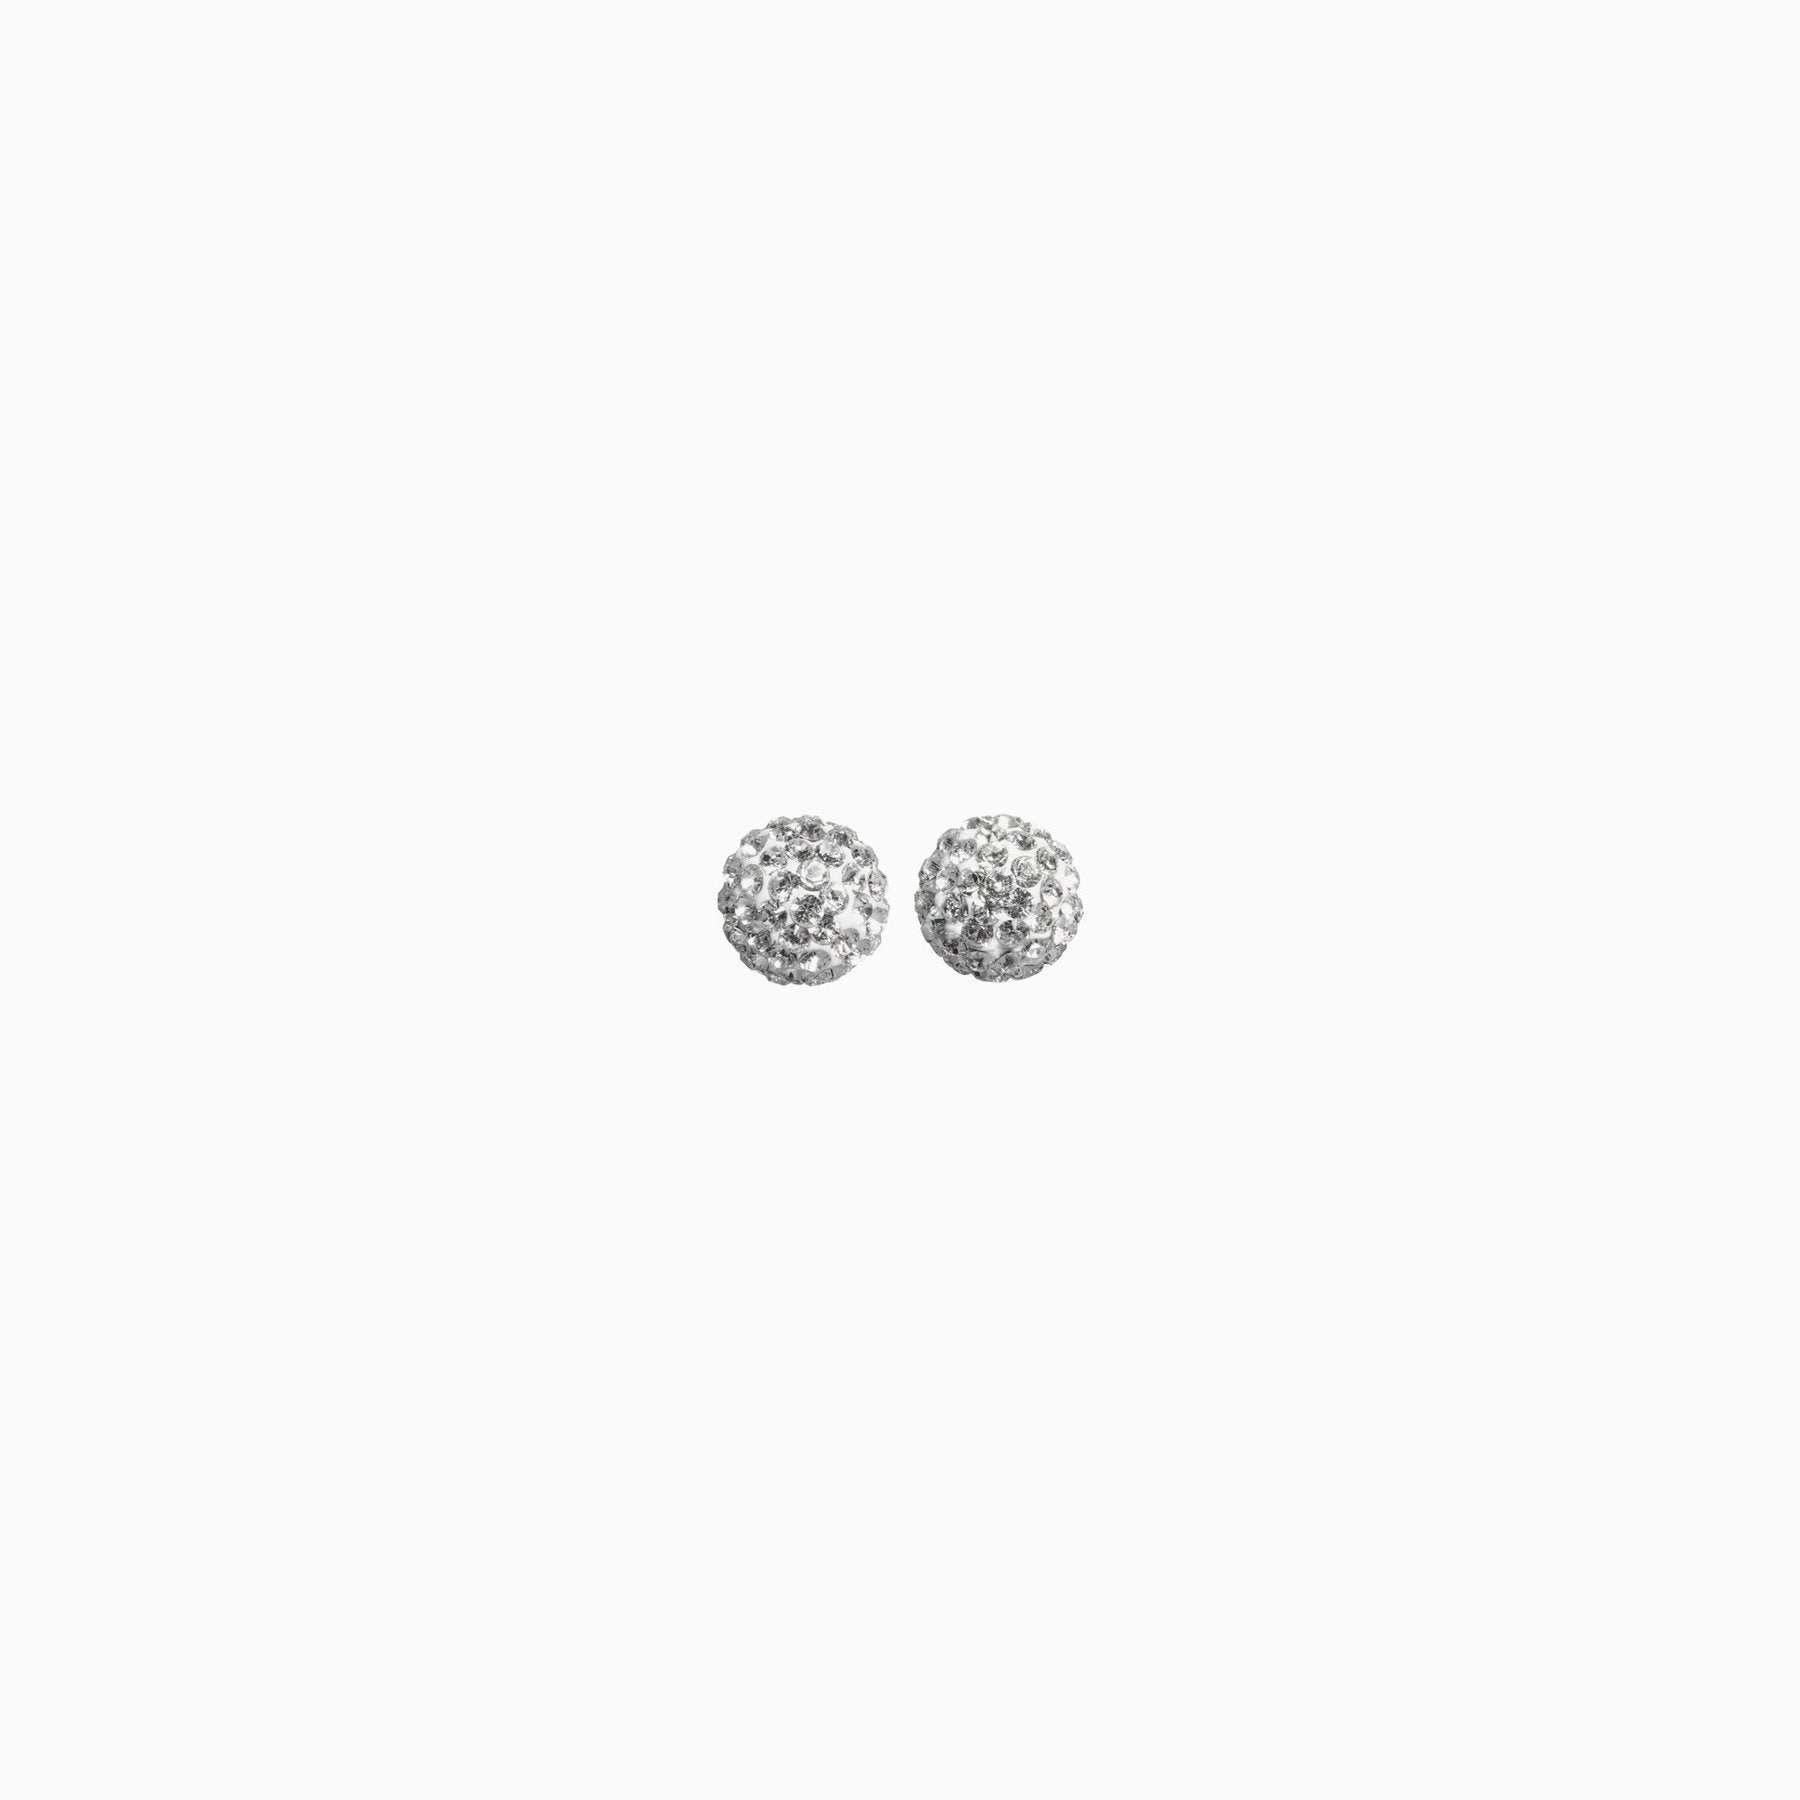 H&B Sparkle Ball™ Stud Earrings - 6mm White